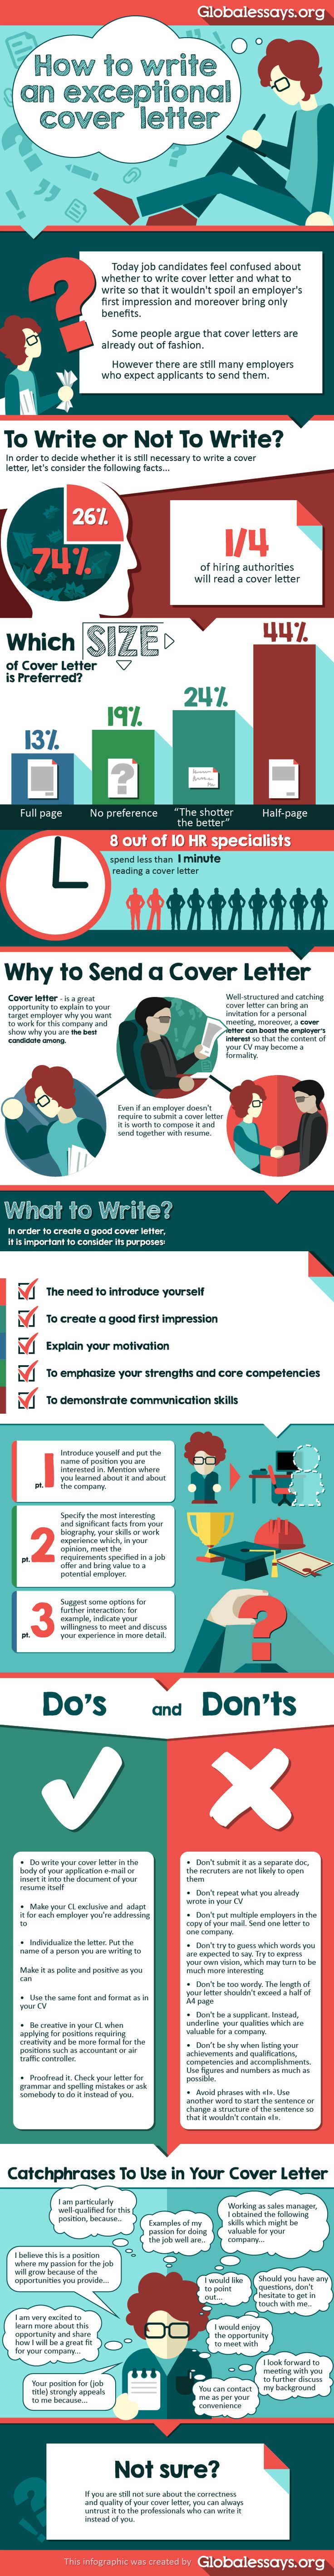 how to write an exceptional cover letter - Cover Letter Critique